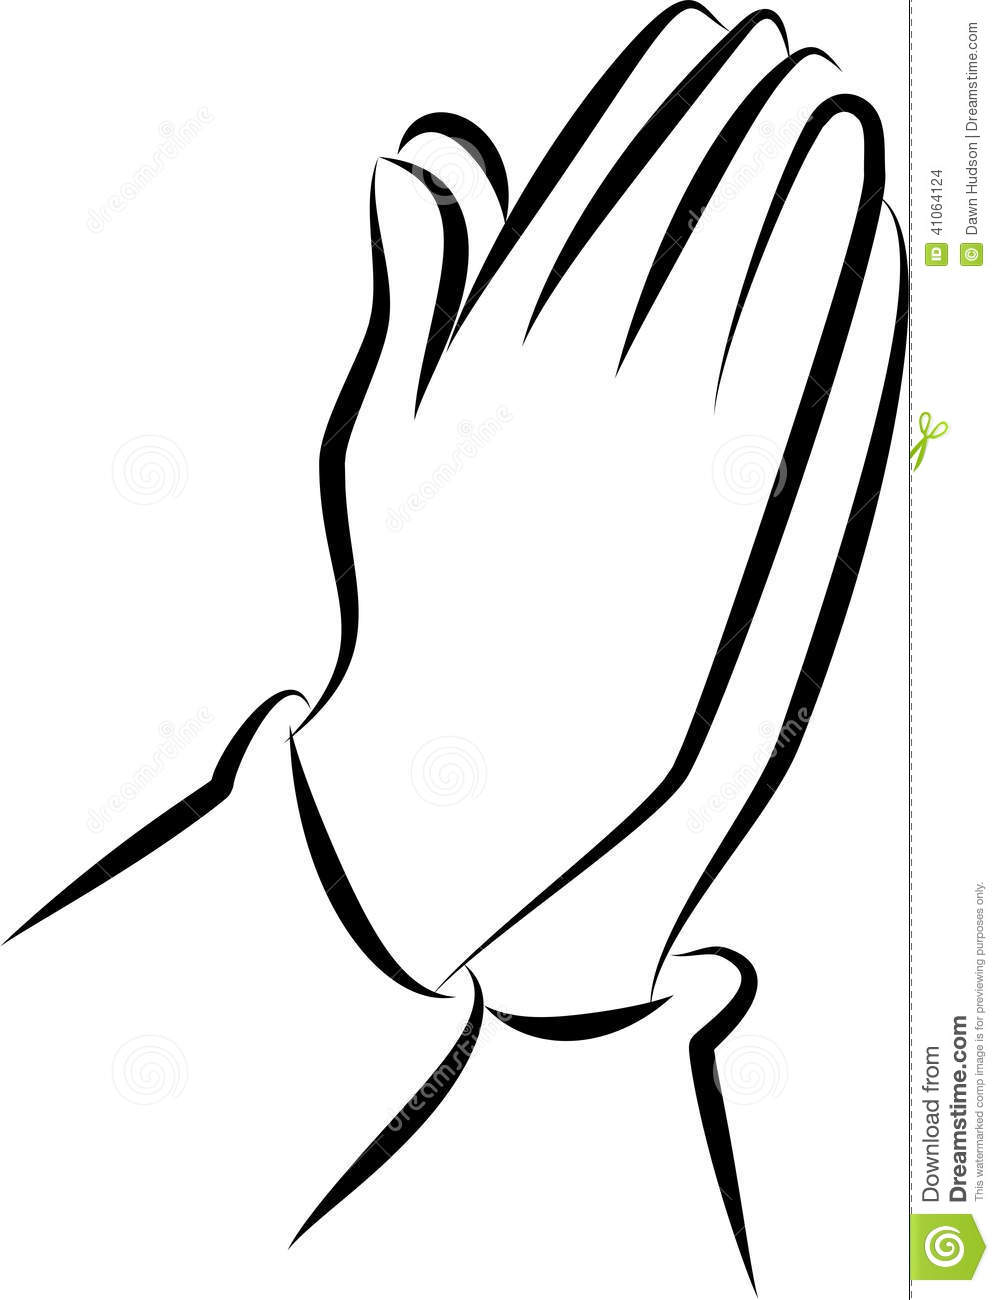 praying hands clip art stock illustration illustration of faith rh dreamstime com clip art praying hands print for free clip art praying hands print for free